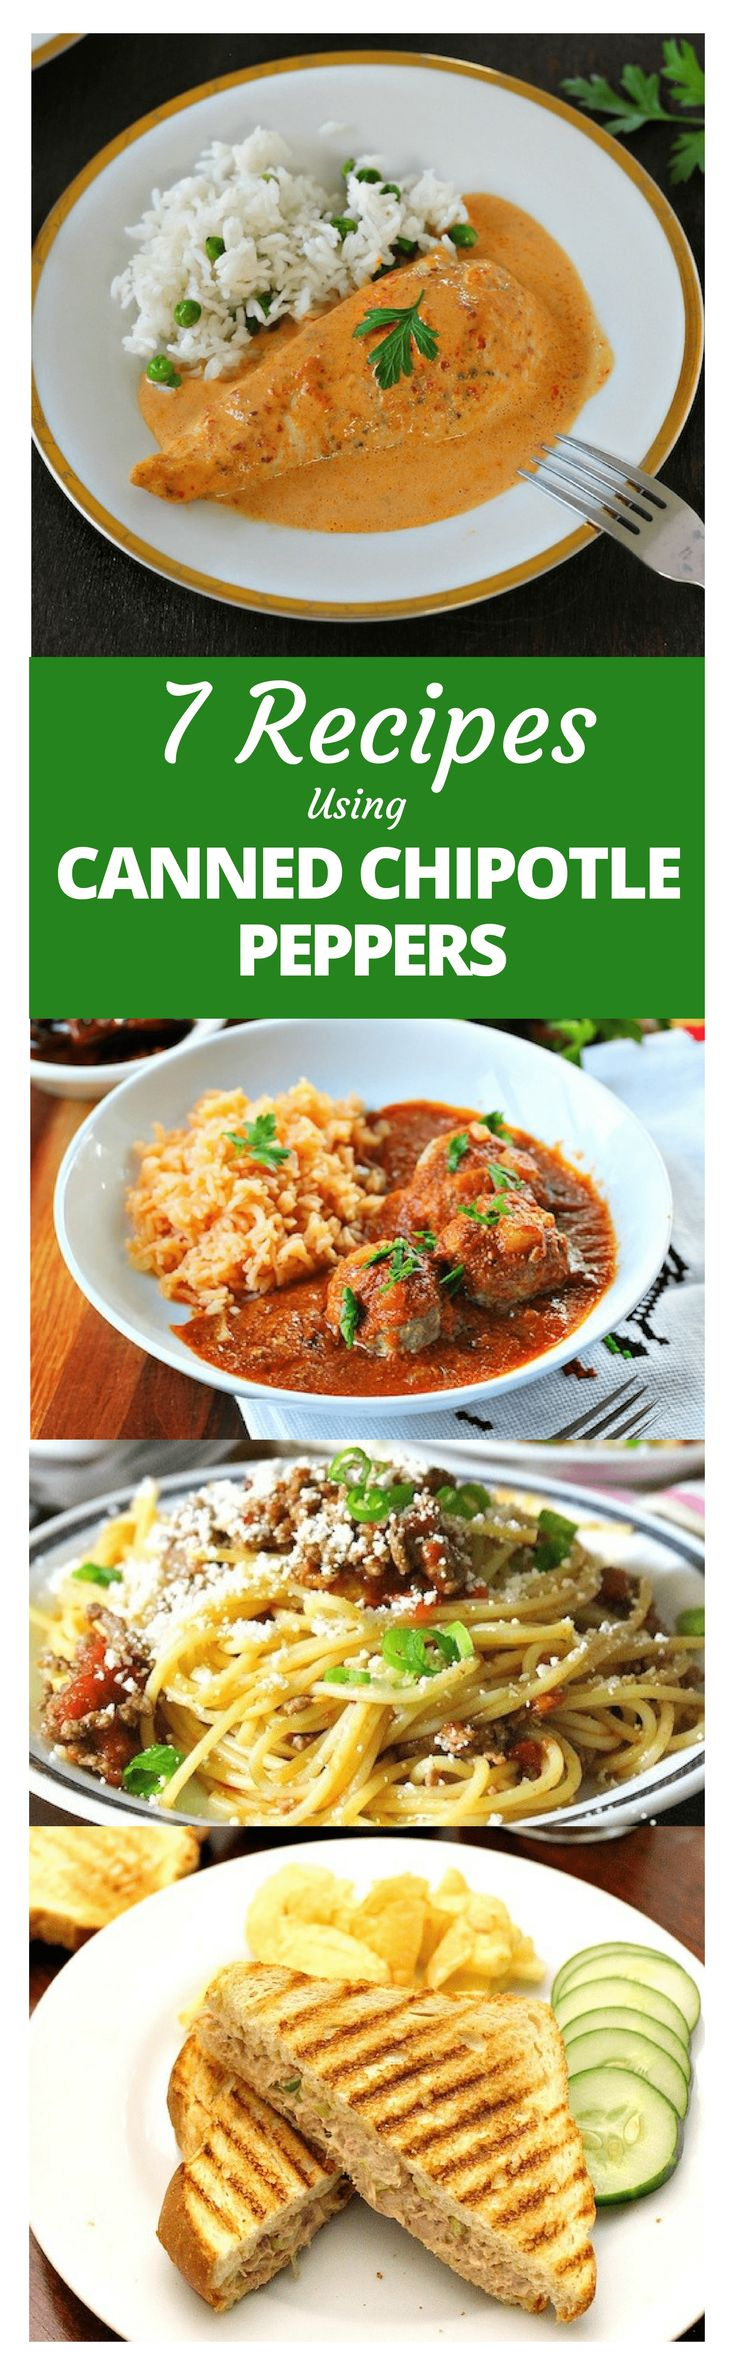 7 Recipes Using Canned Chipotle peppers │Canned chipotle peppers are a common staple in Mexican pantries, as we like to have them handy in case we're making a dish that calls for chipotle peppers. They add a touch of spice and a rich, smoky flavor to many meals #mexicanrecipes #mexicancuisine #mexicanfood #mexicoinmykitchen